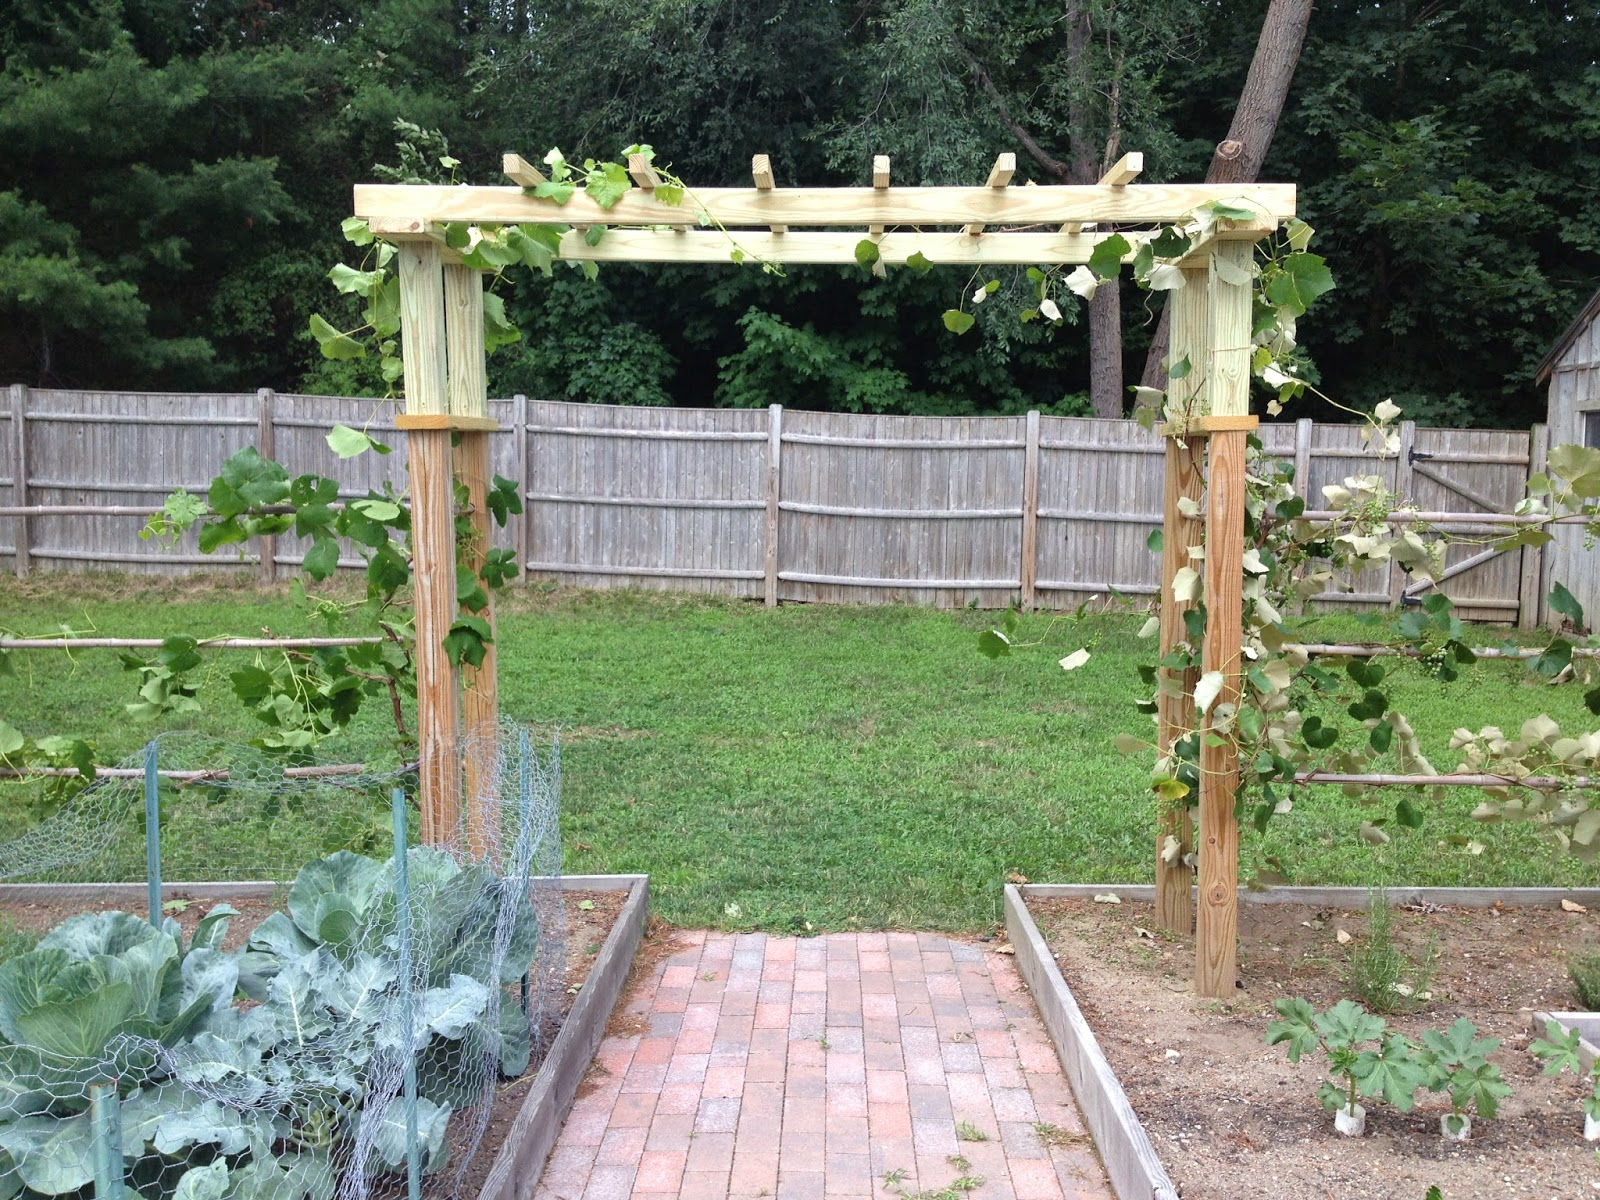 Finishing the grape arbor - How to build a grape vine support the natural roof ...